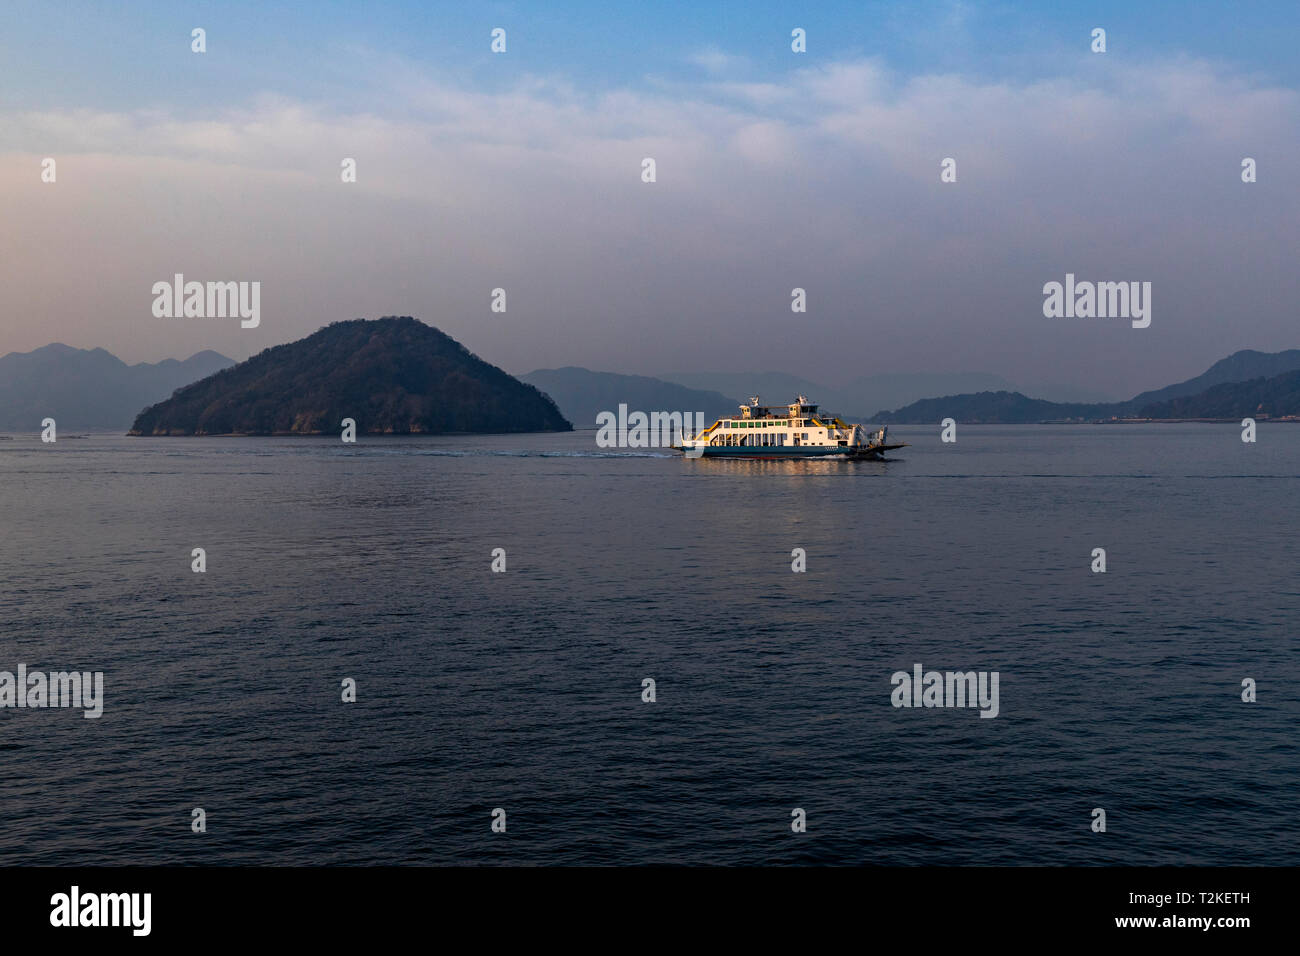 The ISeto Naikai nland Sea separates Honshu, Shikoku and Kyushu - the three  main islands of Japan.  3000 islands are located in the Inland Sea, inclu - Stock Image